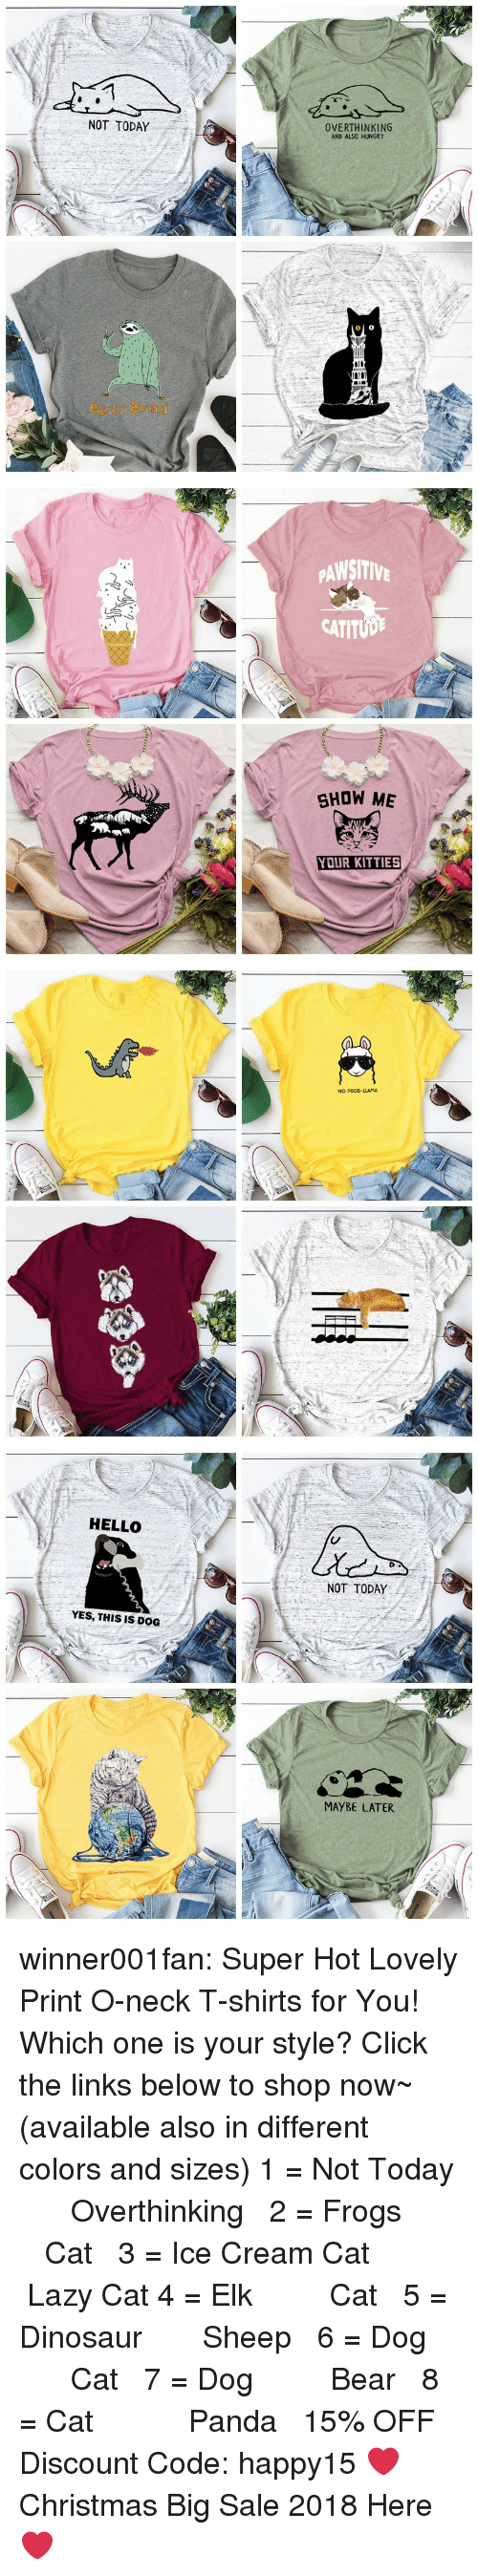 links: NOT TODAY  OVERTHINKING  AND ALSO HUNGRY  Party atm   PAWSITIV  CATITUD  SHOW ME  YOUR KITTIES   NO PROD-LLAMA   HELLO  NOT TODAY  YES, THIS IS DOG  MAYBE LATER winner001fan: Super Hot Lovely Print O-neck T-shirts for You! Which one is your style? Click the links below to shop now~ (available also in different colors and sizes) 1 = Not Today  ☆★  Overthinking  2 = Frogs   ☆★  Cat  3 = Ice Cream Cat  ☆★  Lazy Cat  4 = Elk   ☆★  Cat  5 = Dinosaur  ☆★  Sheep  6 = Dog   ☆★  Cat  7 = Dog   ☆★  Bear  8 = Cat    ☆★  Panda  15% OFF Discount Code: happy15 ❤Christmas Big Sale 2018 Here ❤